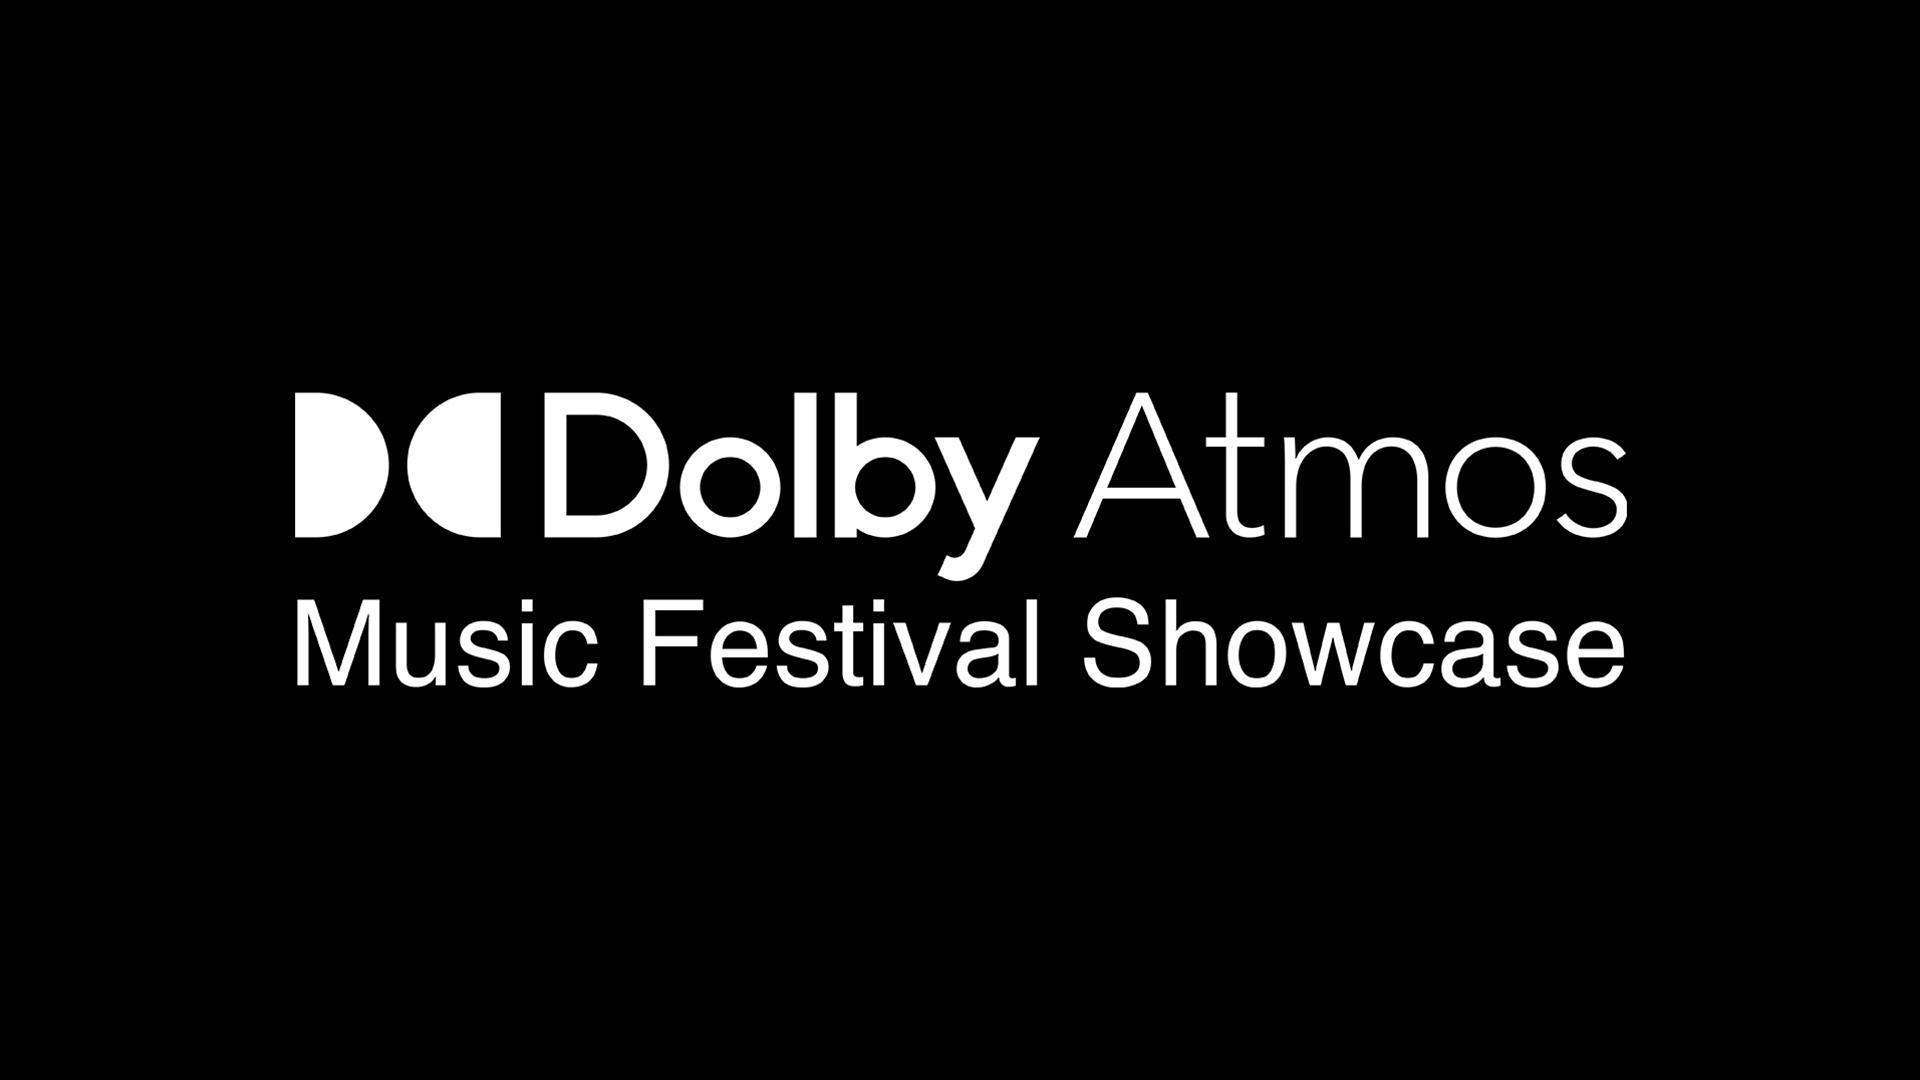 Dolby Atmos Music Festival Showcase